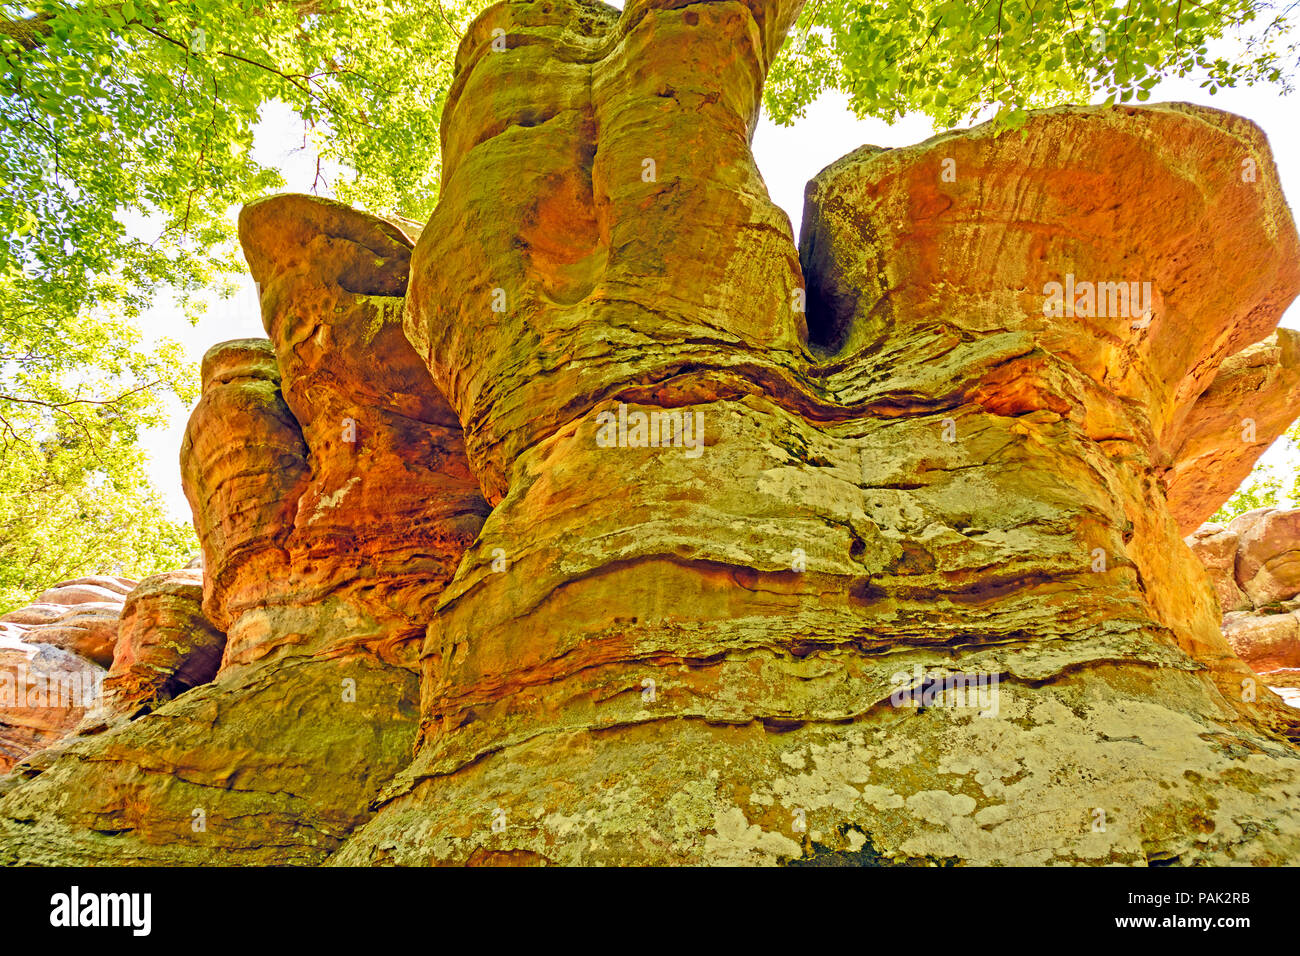 Sandstone formations in the Garden of the Gods in Shawnee National Forest - Stock Image